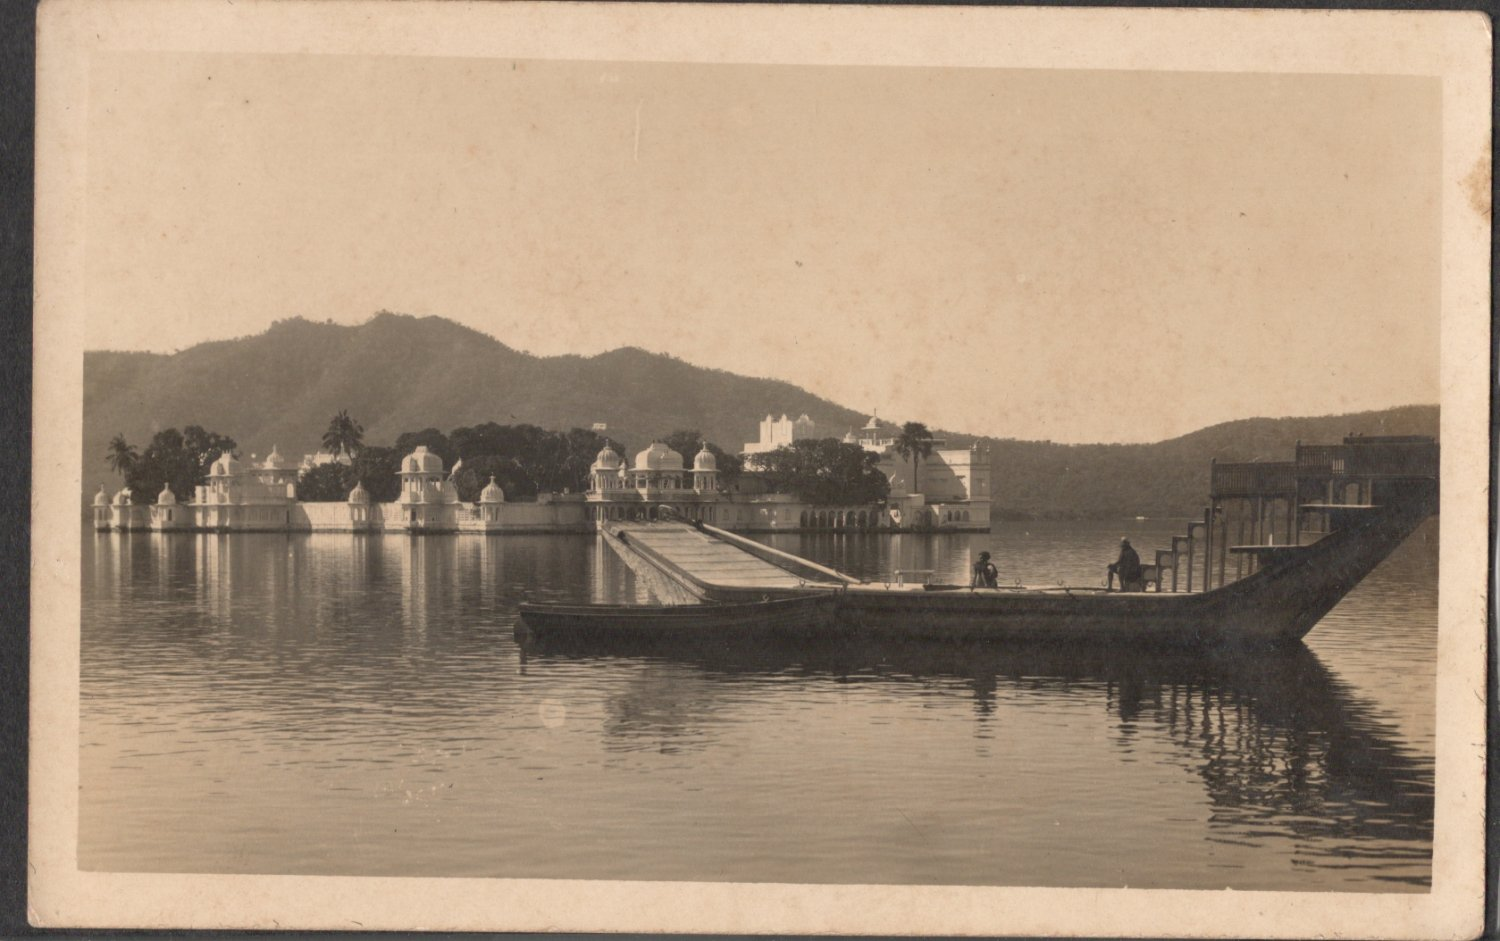 LAKE TEMPLE VIEW FROM INDIA VINTAGE OLD PICTURE POSTCARD